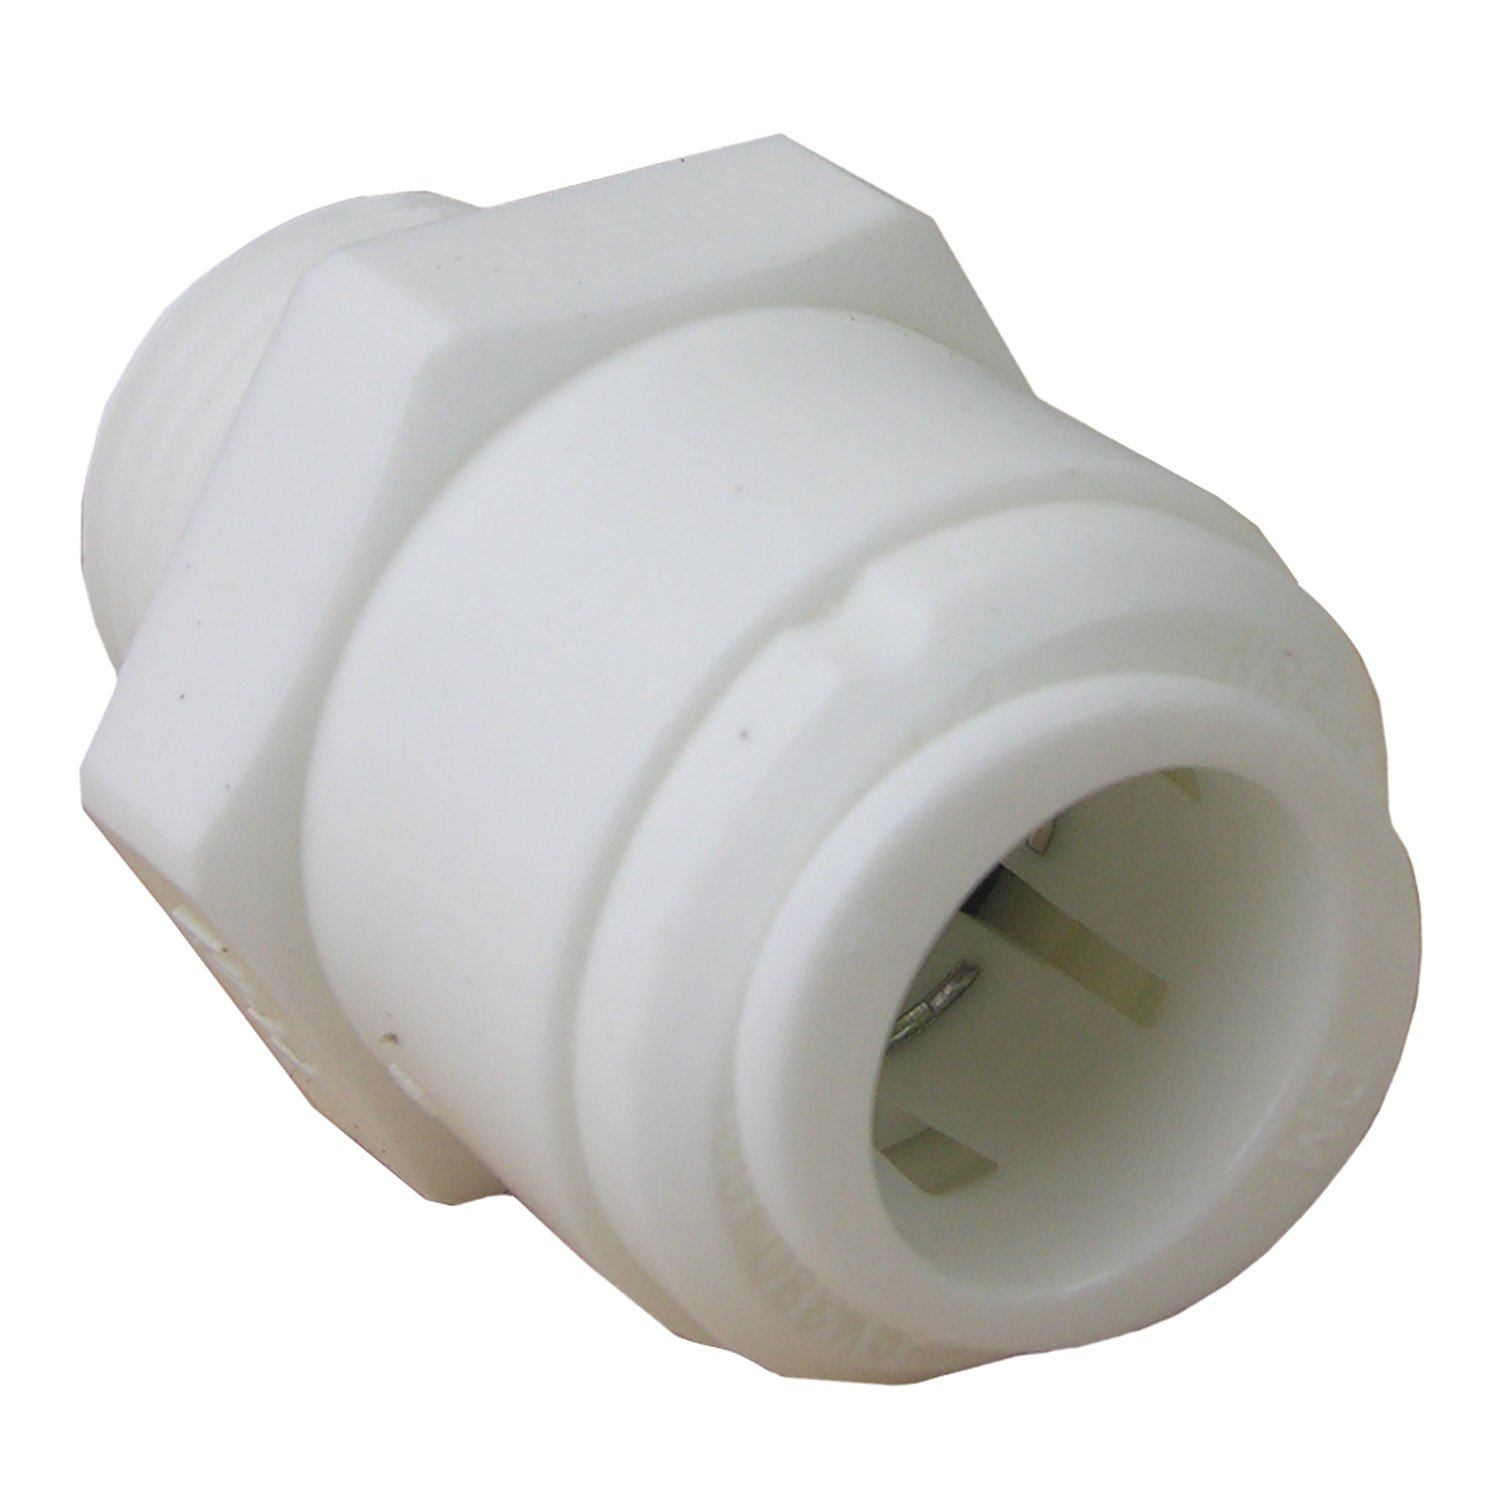 Plastic LASCO 19-6021 Male Pipe Thread Adapter Push-In Fitting with 1//2-Inch OD Tube and 3//8-Inch Male Pipe Thread